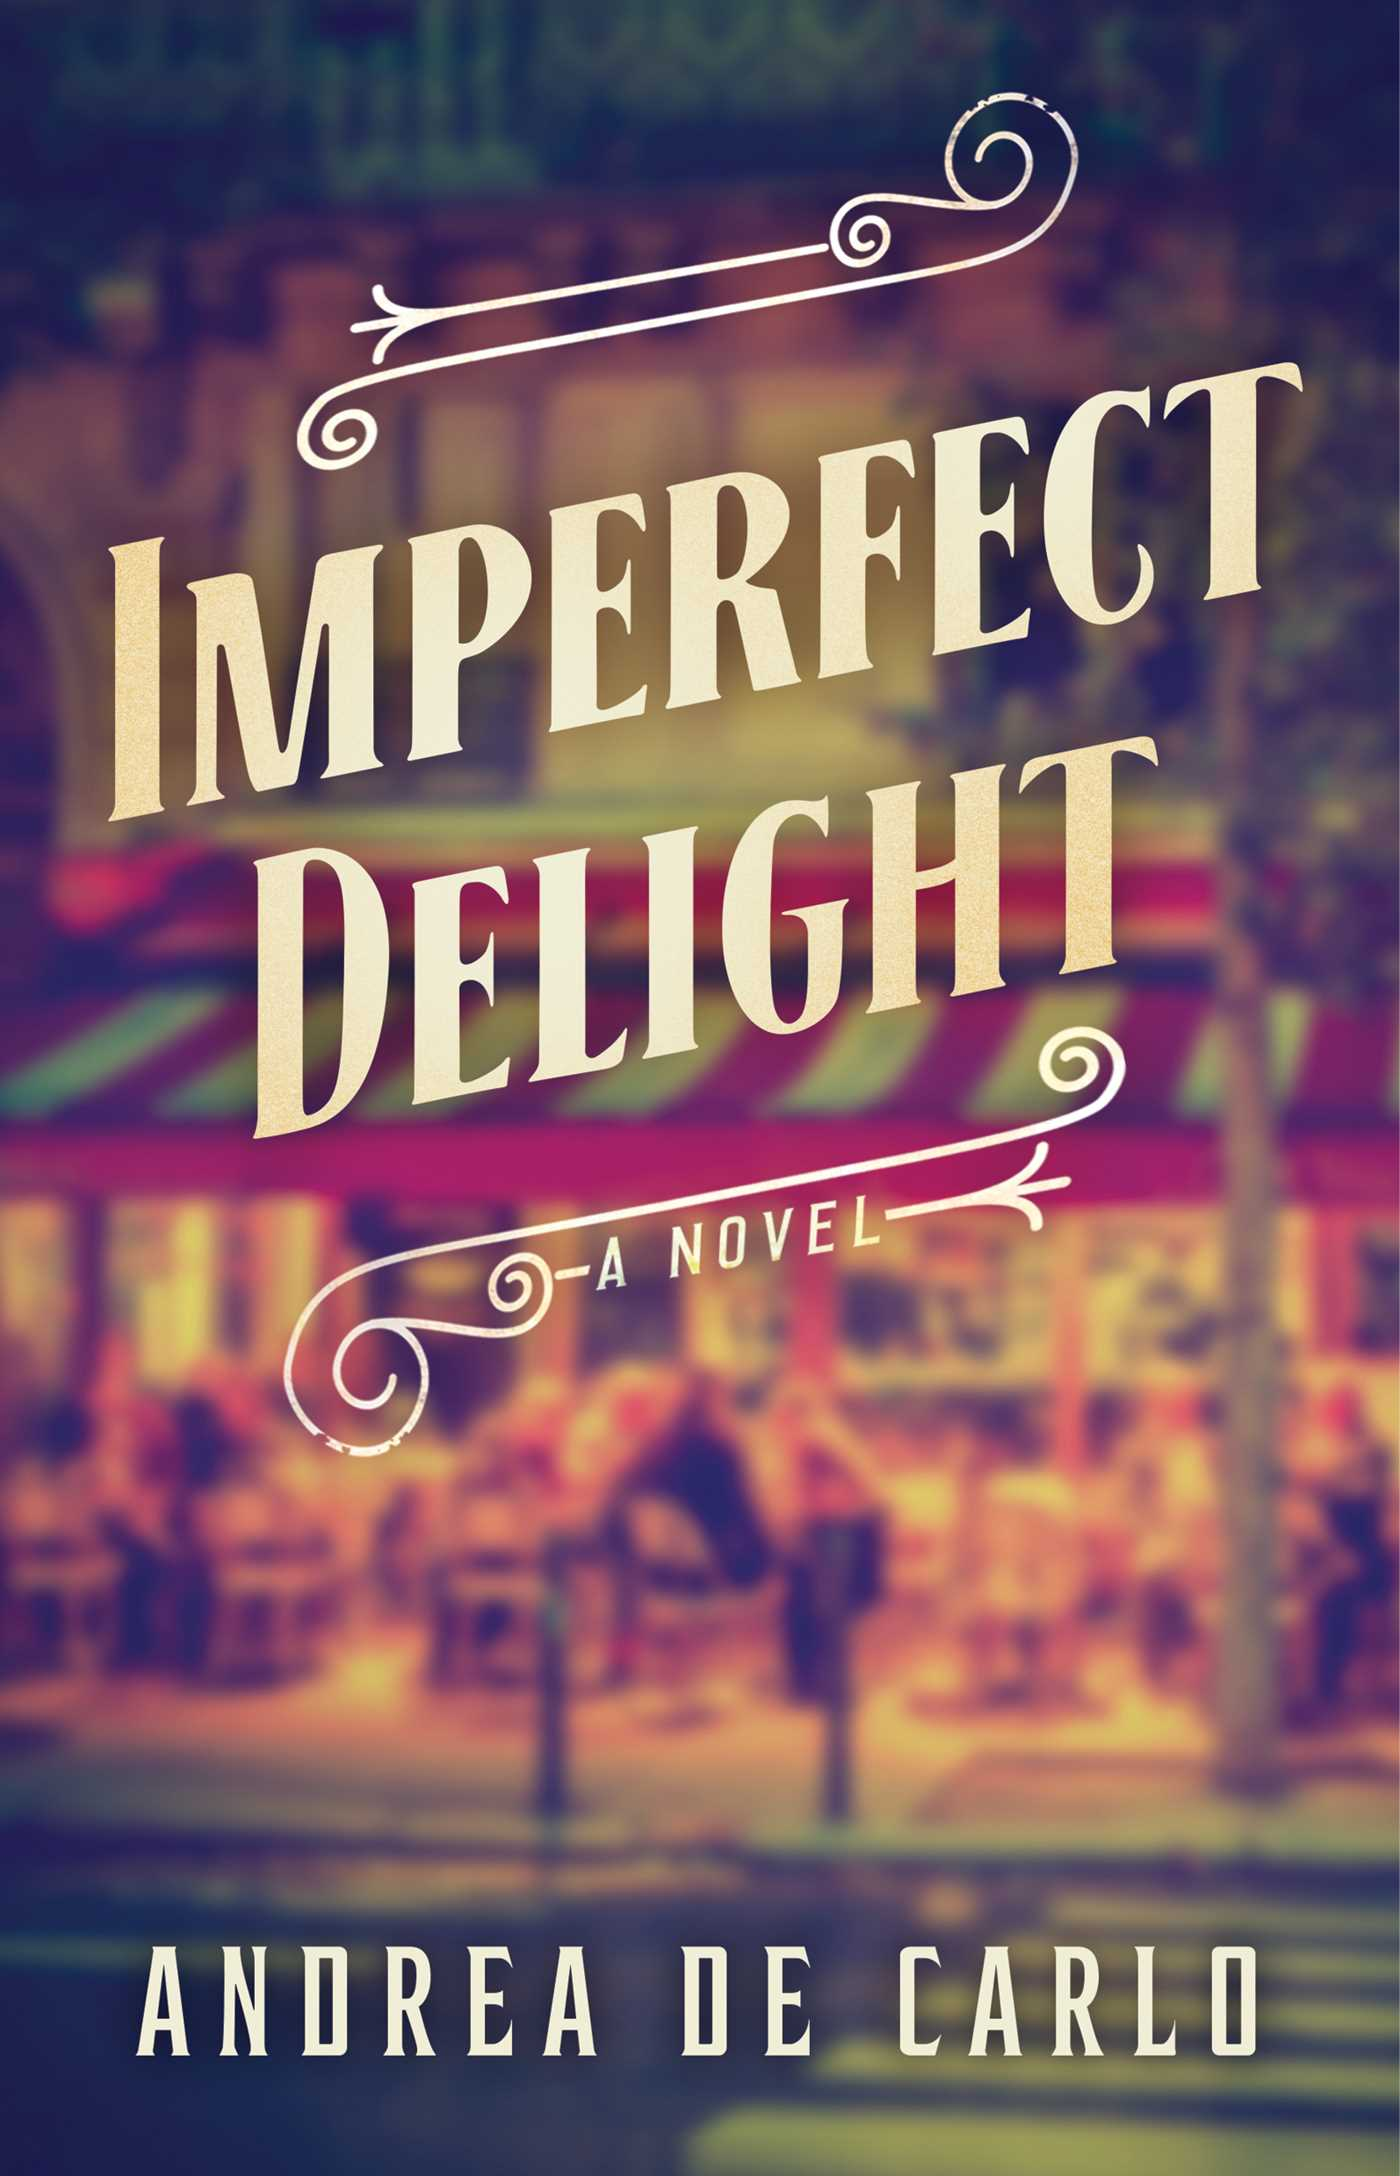 Imperfect delight 9781501179778 hr